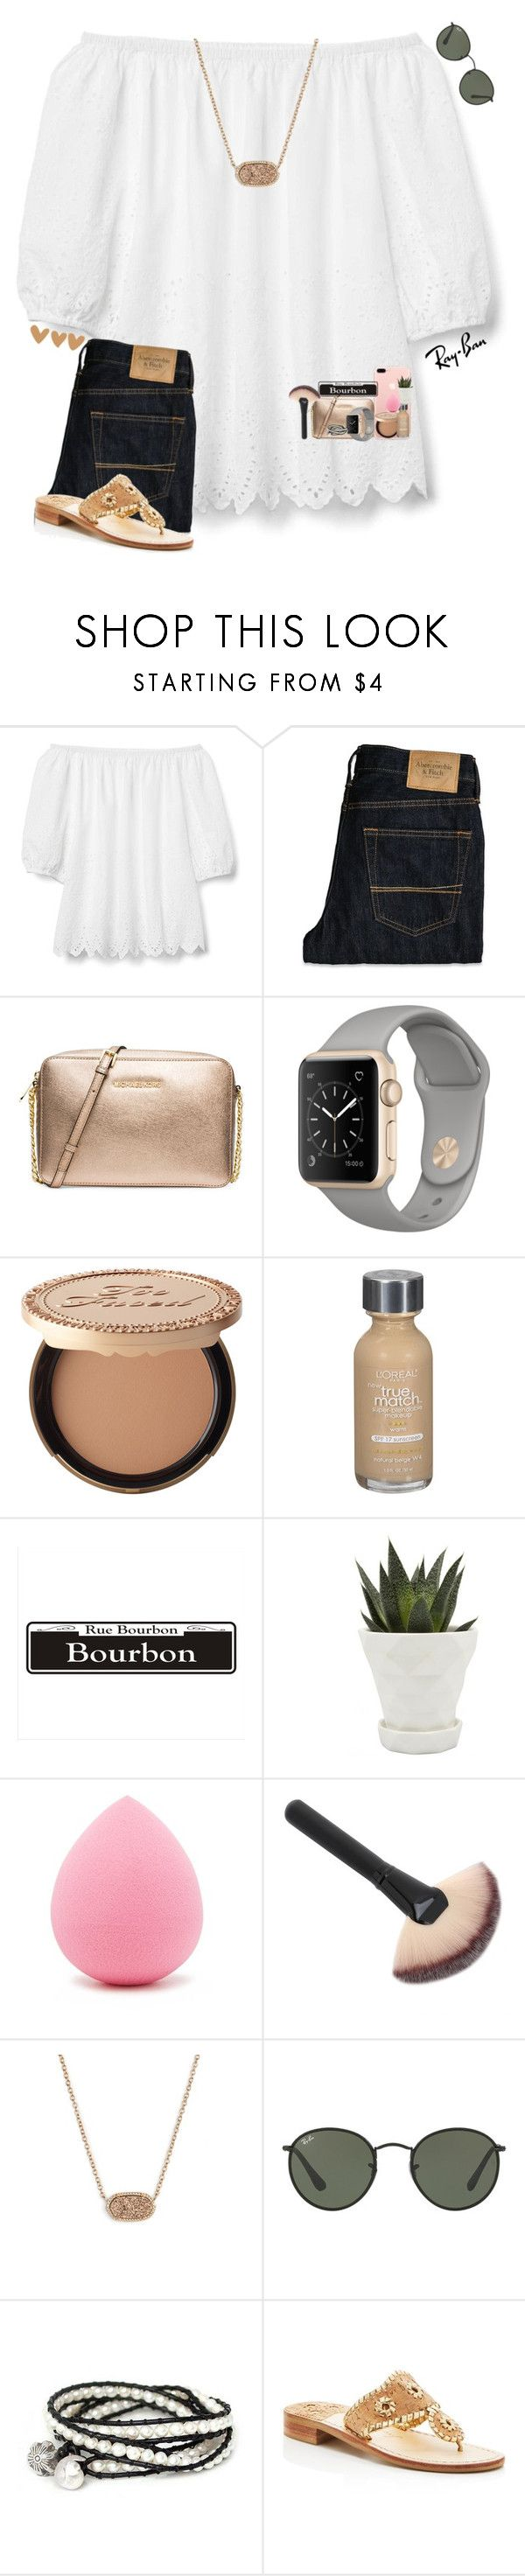 """""""•tomorrow is the day!•"""" by mackenzielacy814 on Polyvore featuring Gap, Abercrombie & Fitch, MICHAEL Michael Kors, Too Faced Cosmetics, L'Oréal Paris, Chive, Forever 21, Ray-Ban, Kendra Scott and NOVICA"""